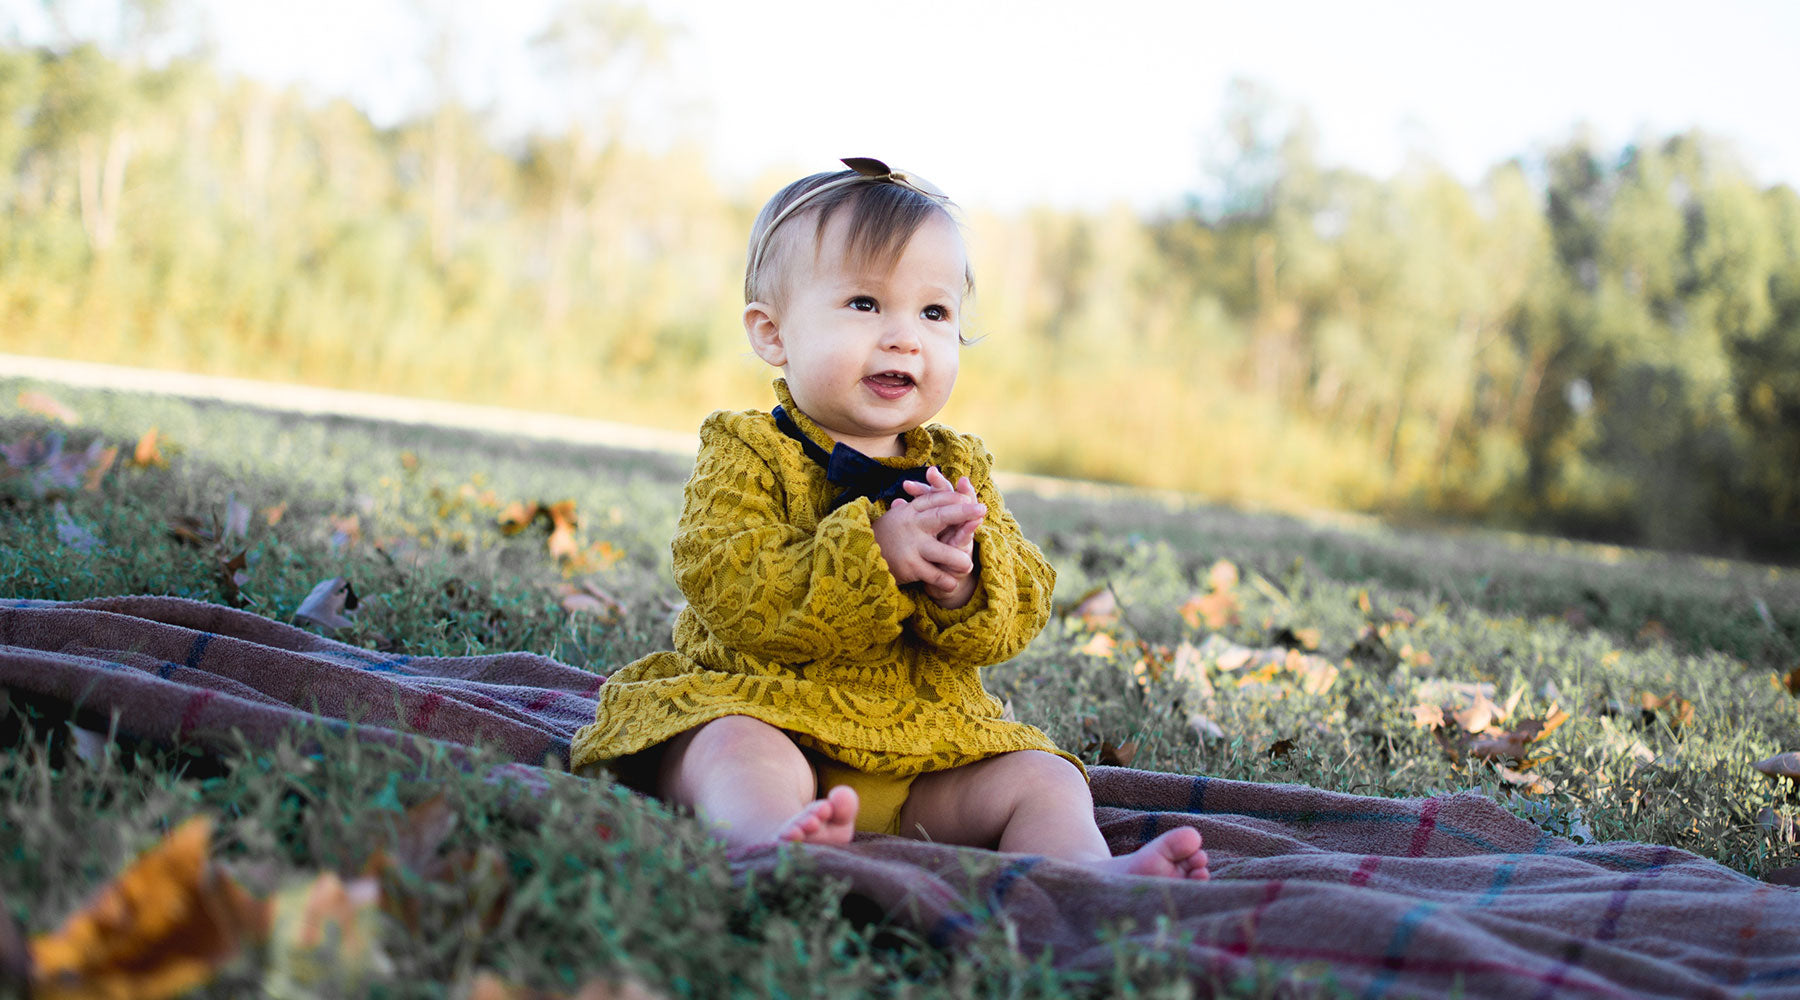 Baby girl sitting on a picnic blanket outdoors